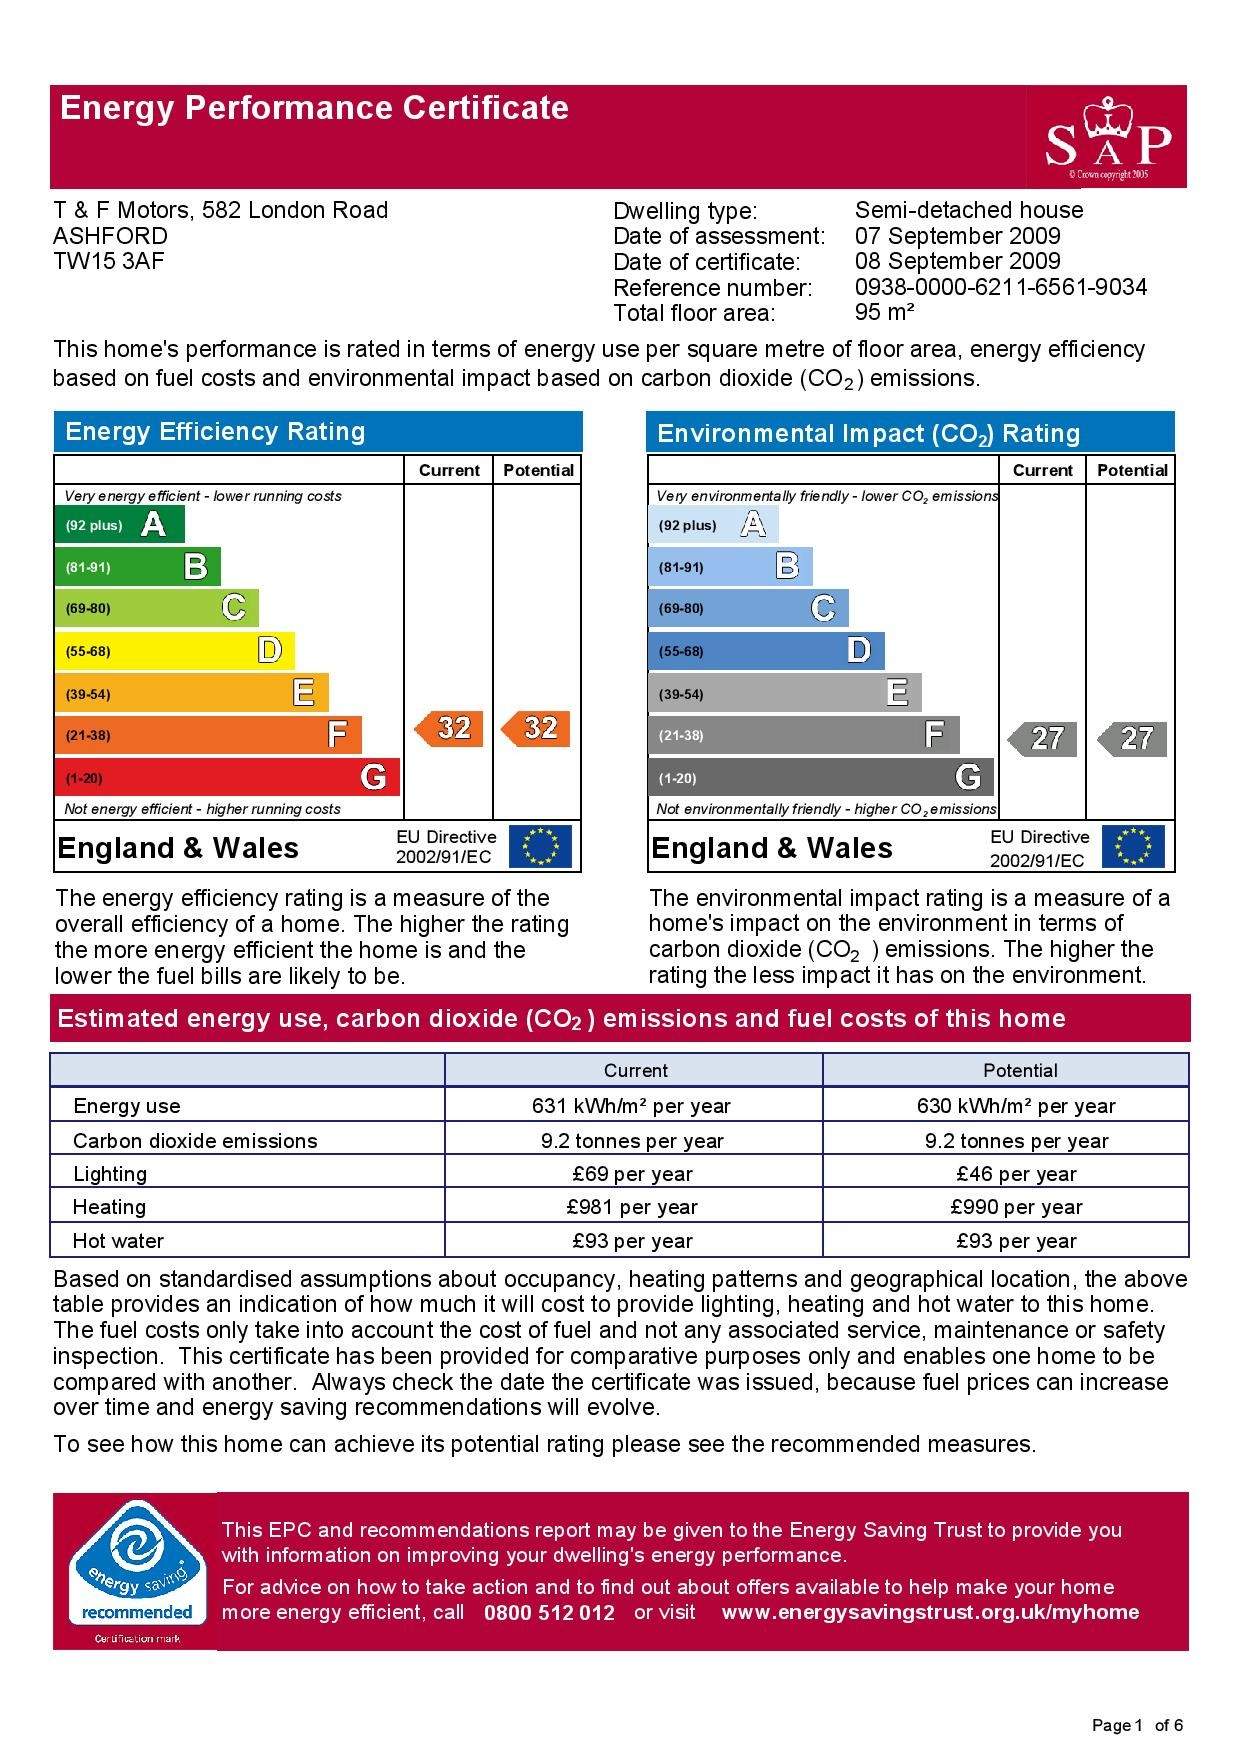 EPC Graph for 582 London Road, Ashford, Middlesex TW15 3AF